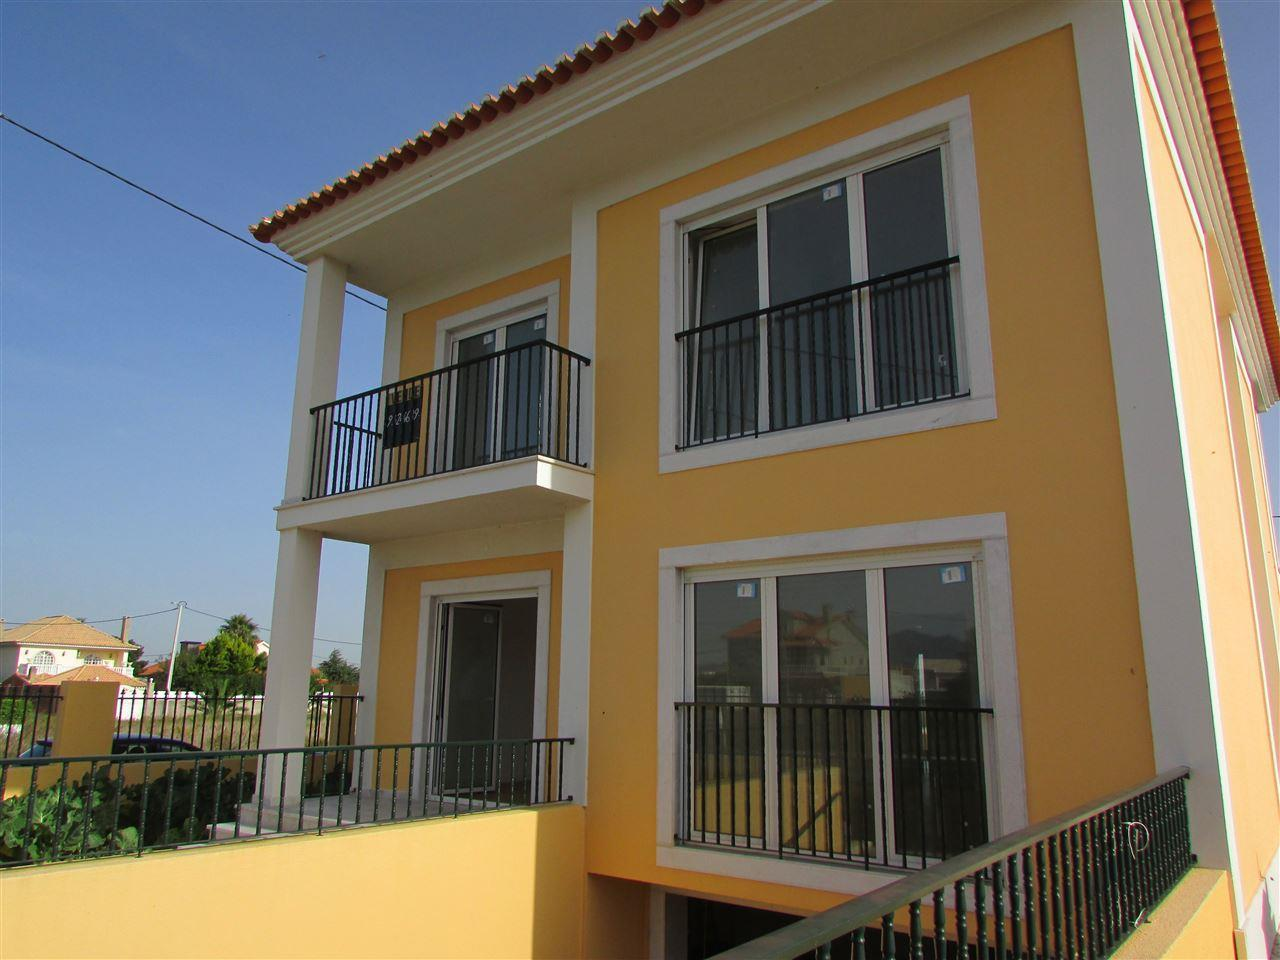 Maison unifamiliale pour l Vente à Detached house, 3 bedrooms, for Sale Cascais, Lisbonne, 2645-569 Portugal